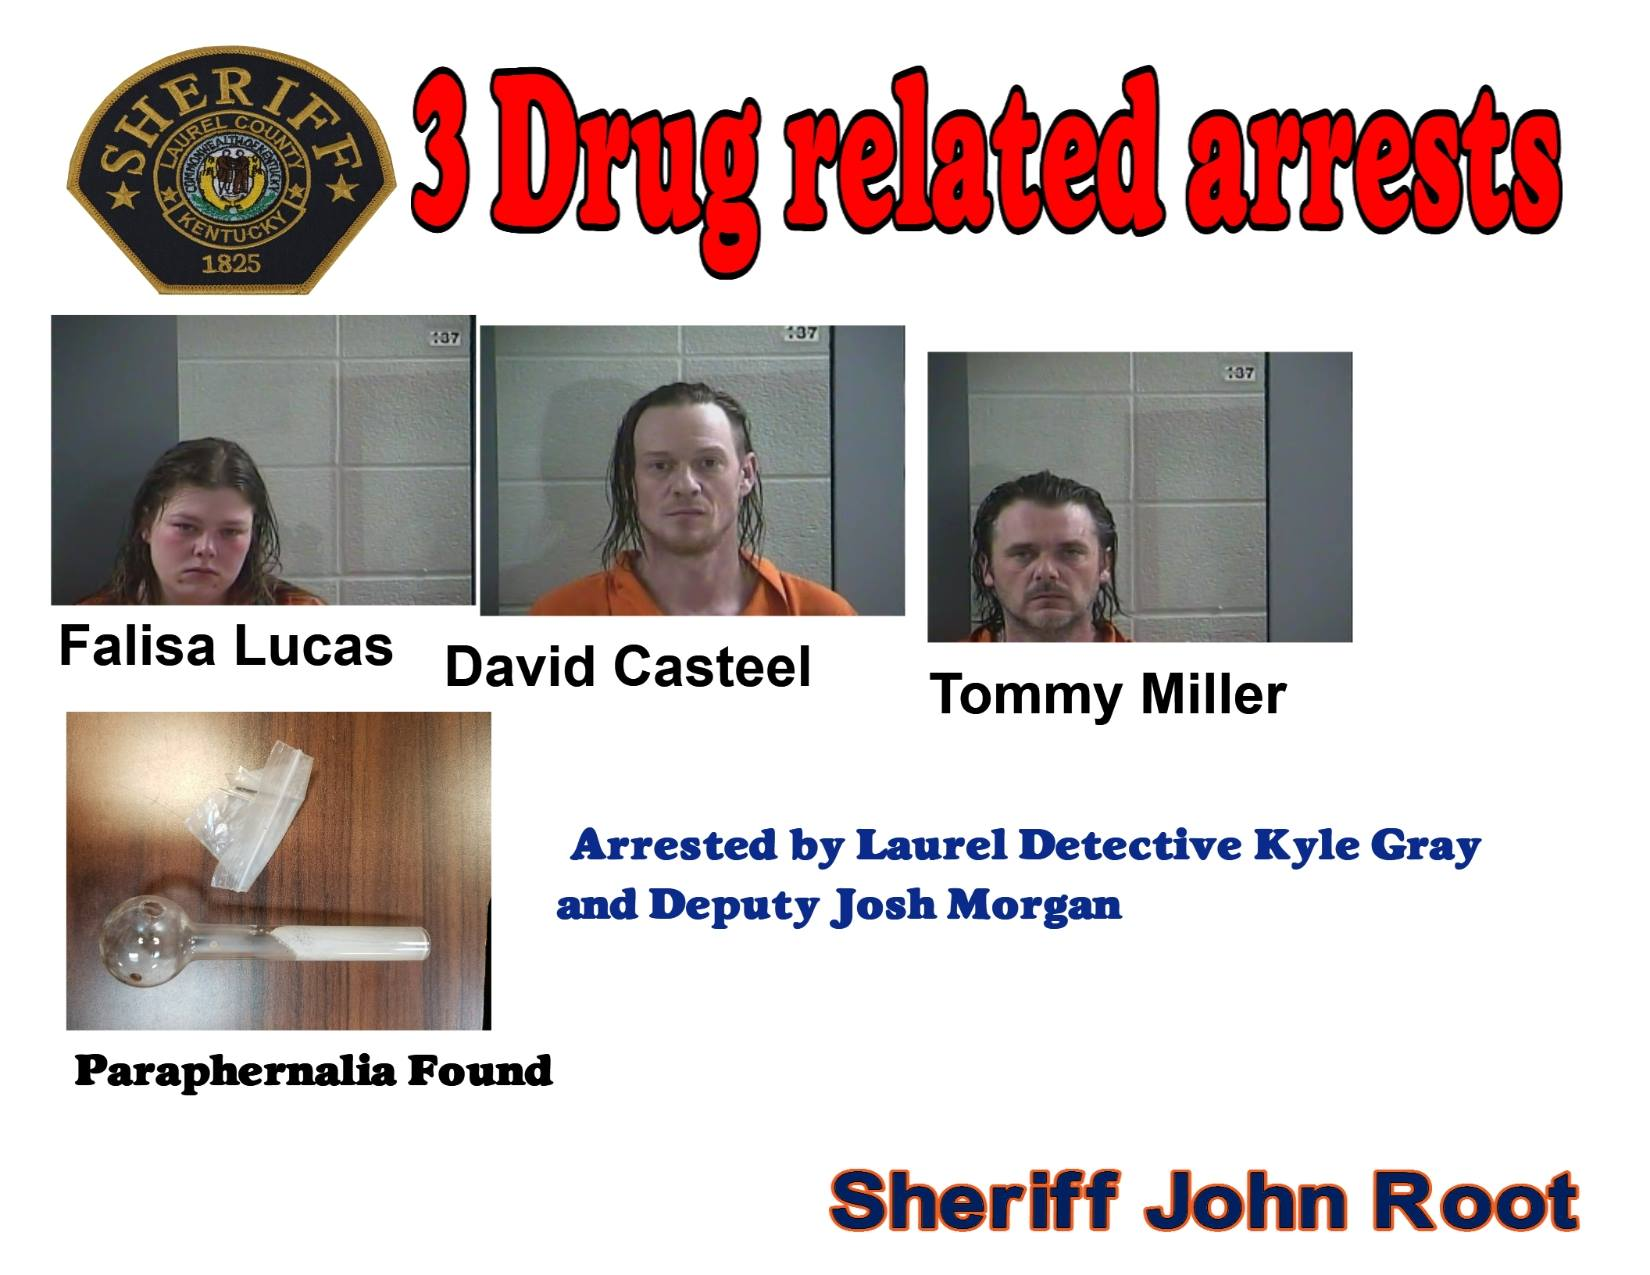 Three People Arrested On Drug Related Charges During Child Welfare Check